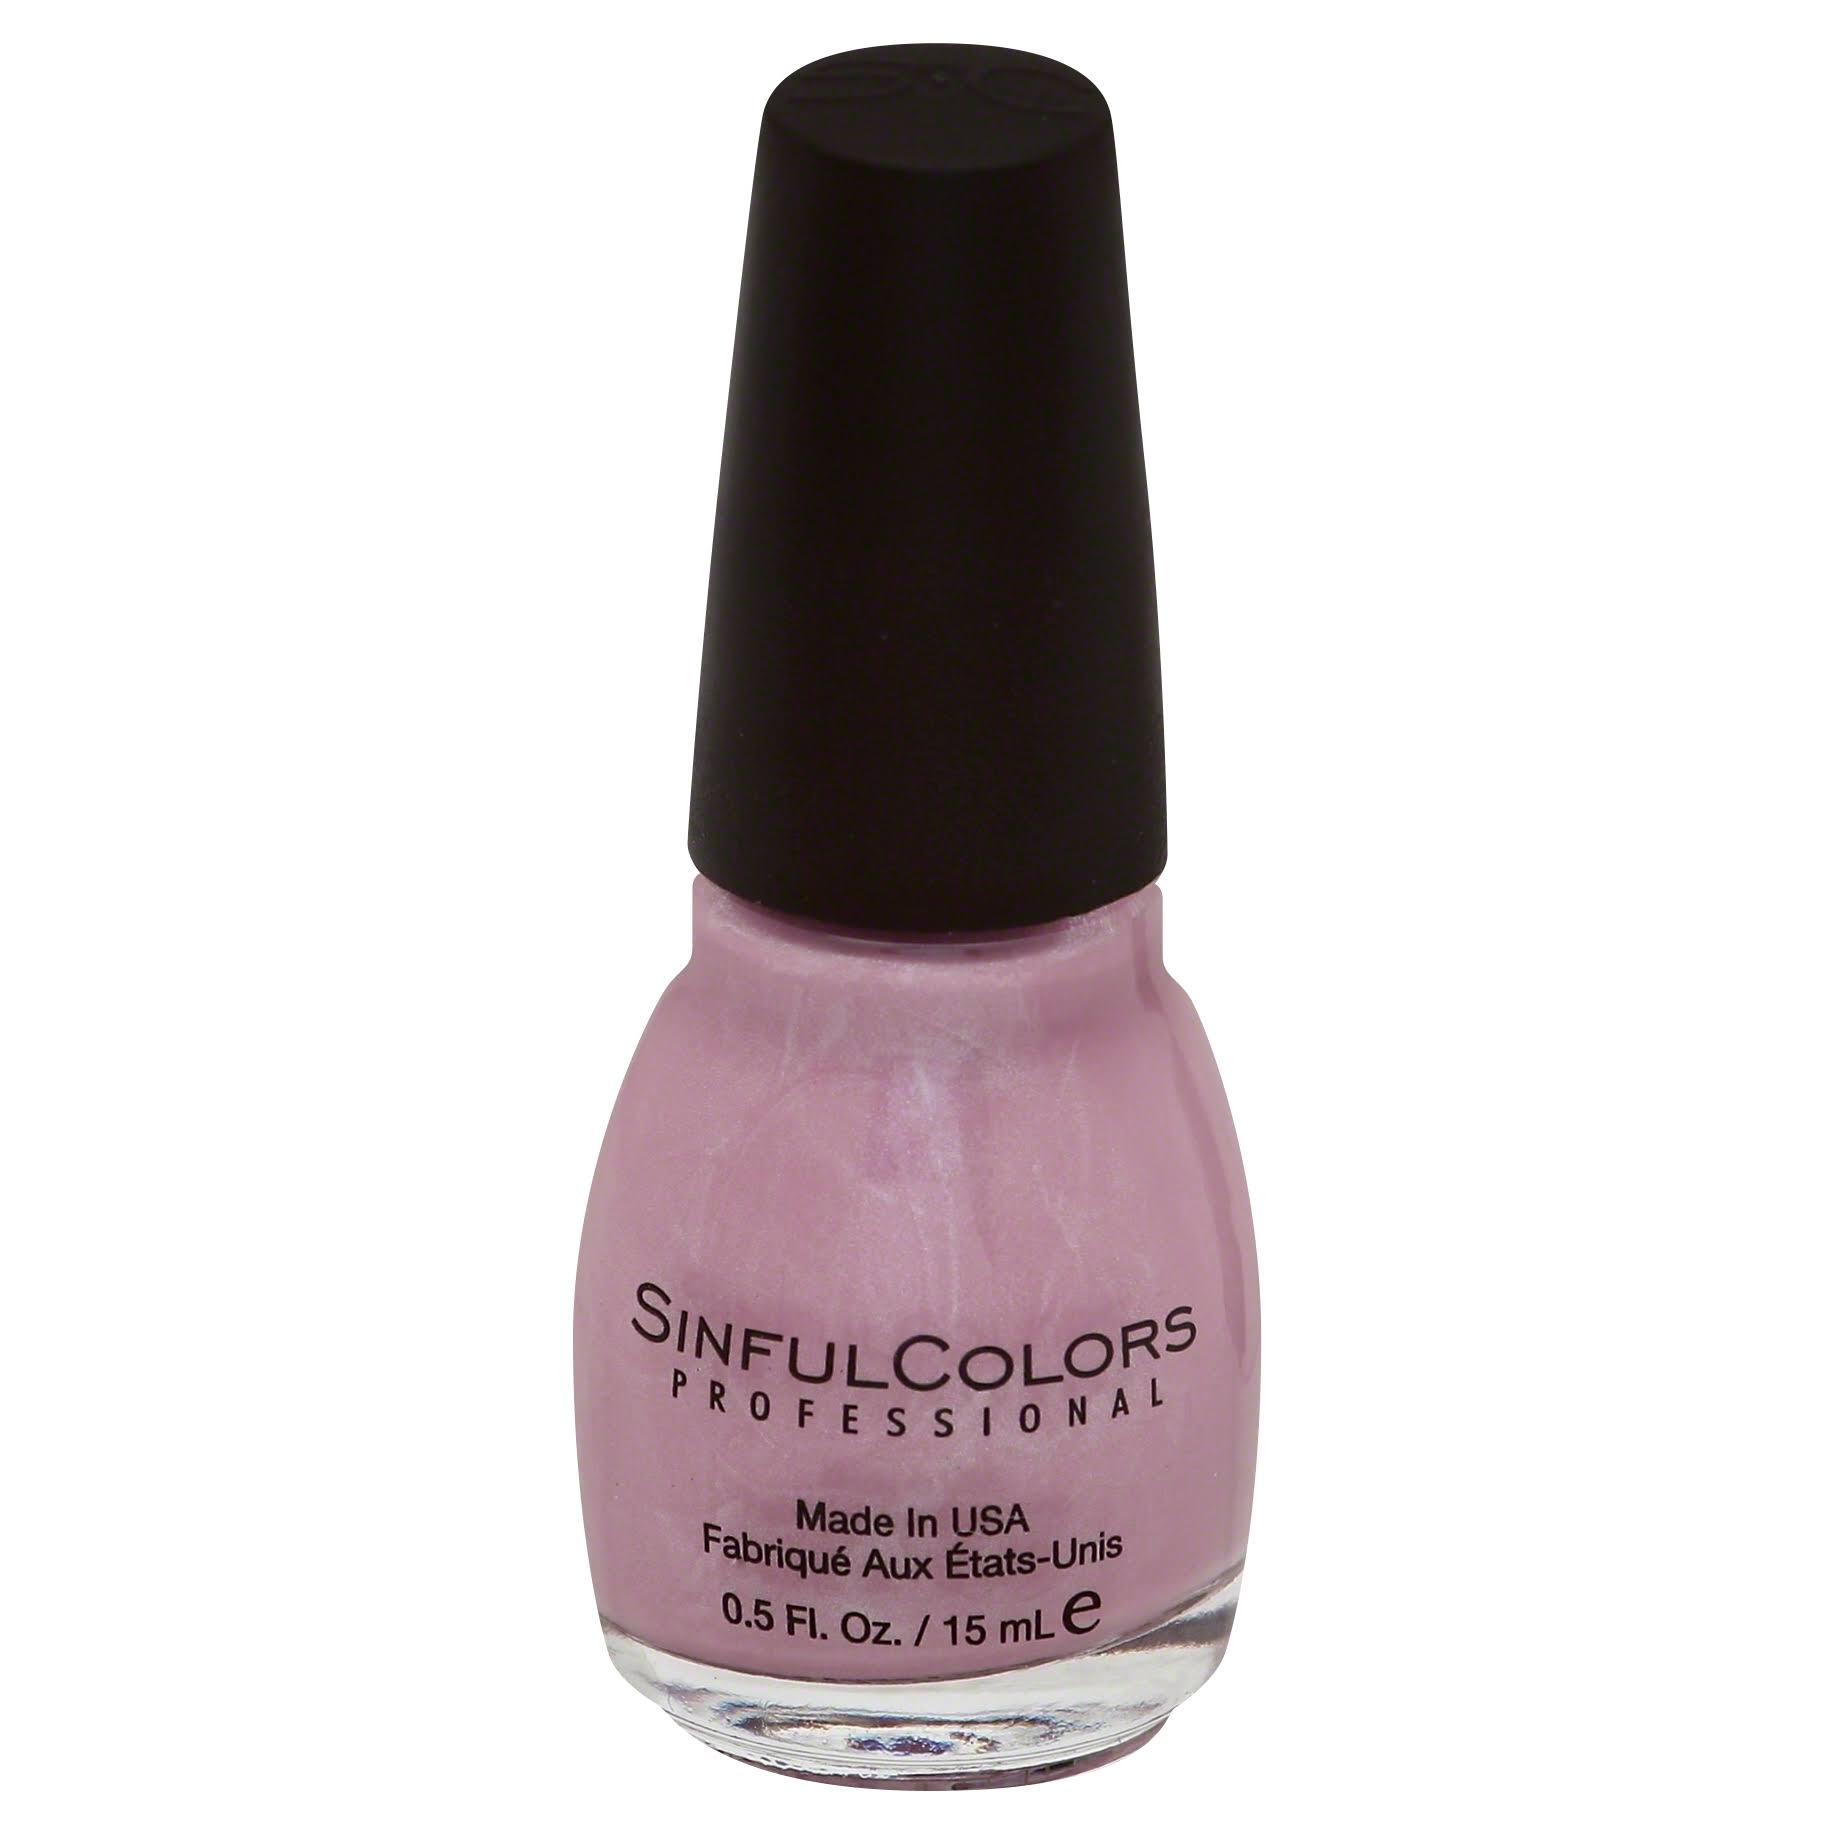 Sinful Colours Professional Nail Polish - Rose Dust, 15ml